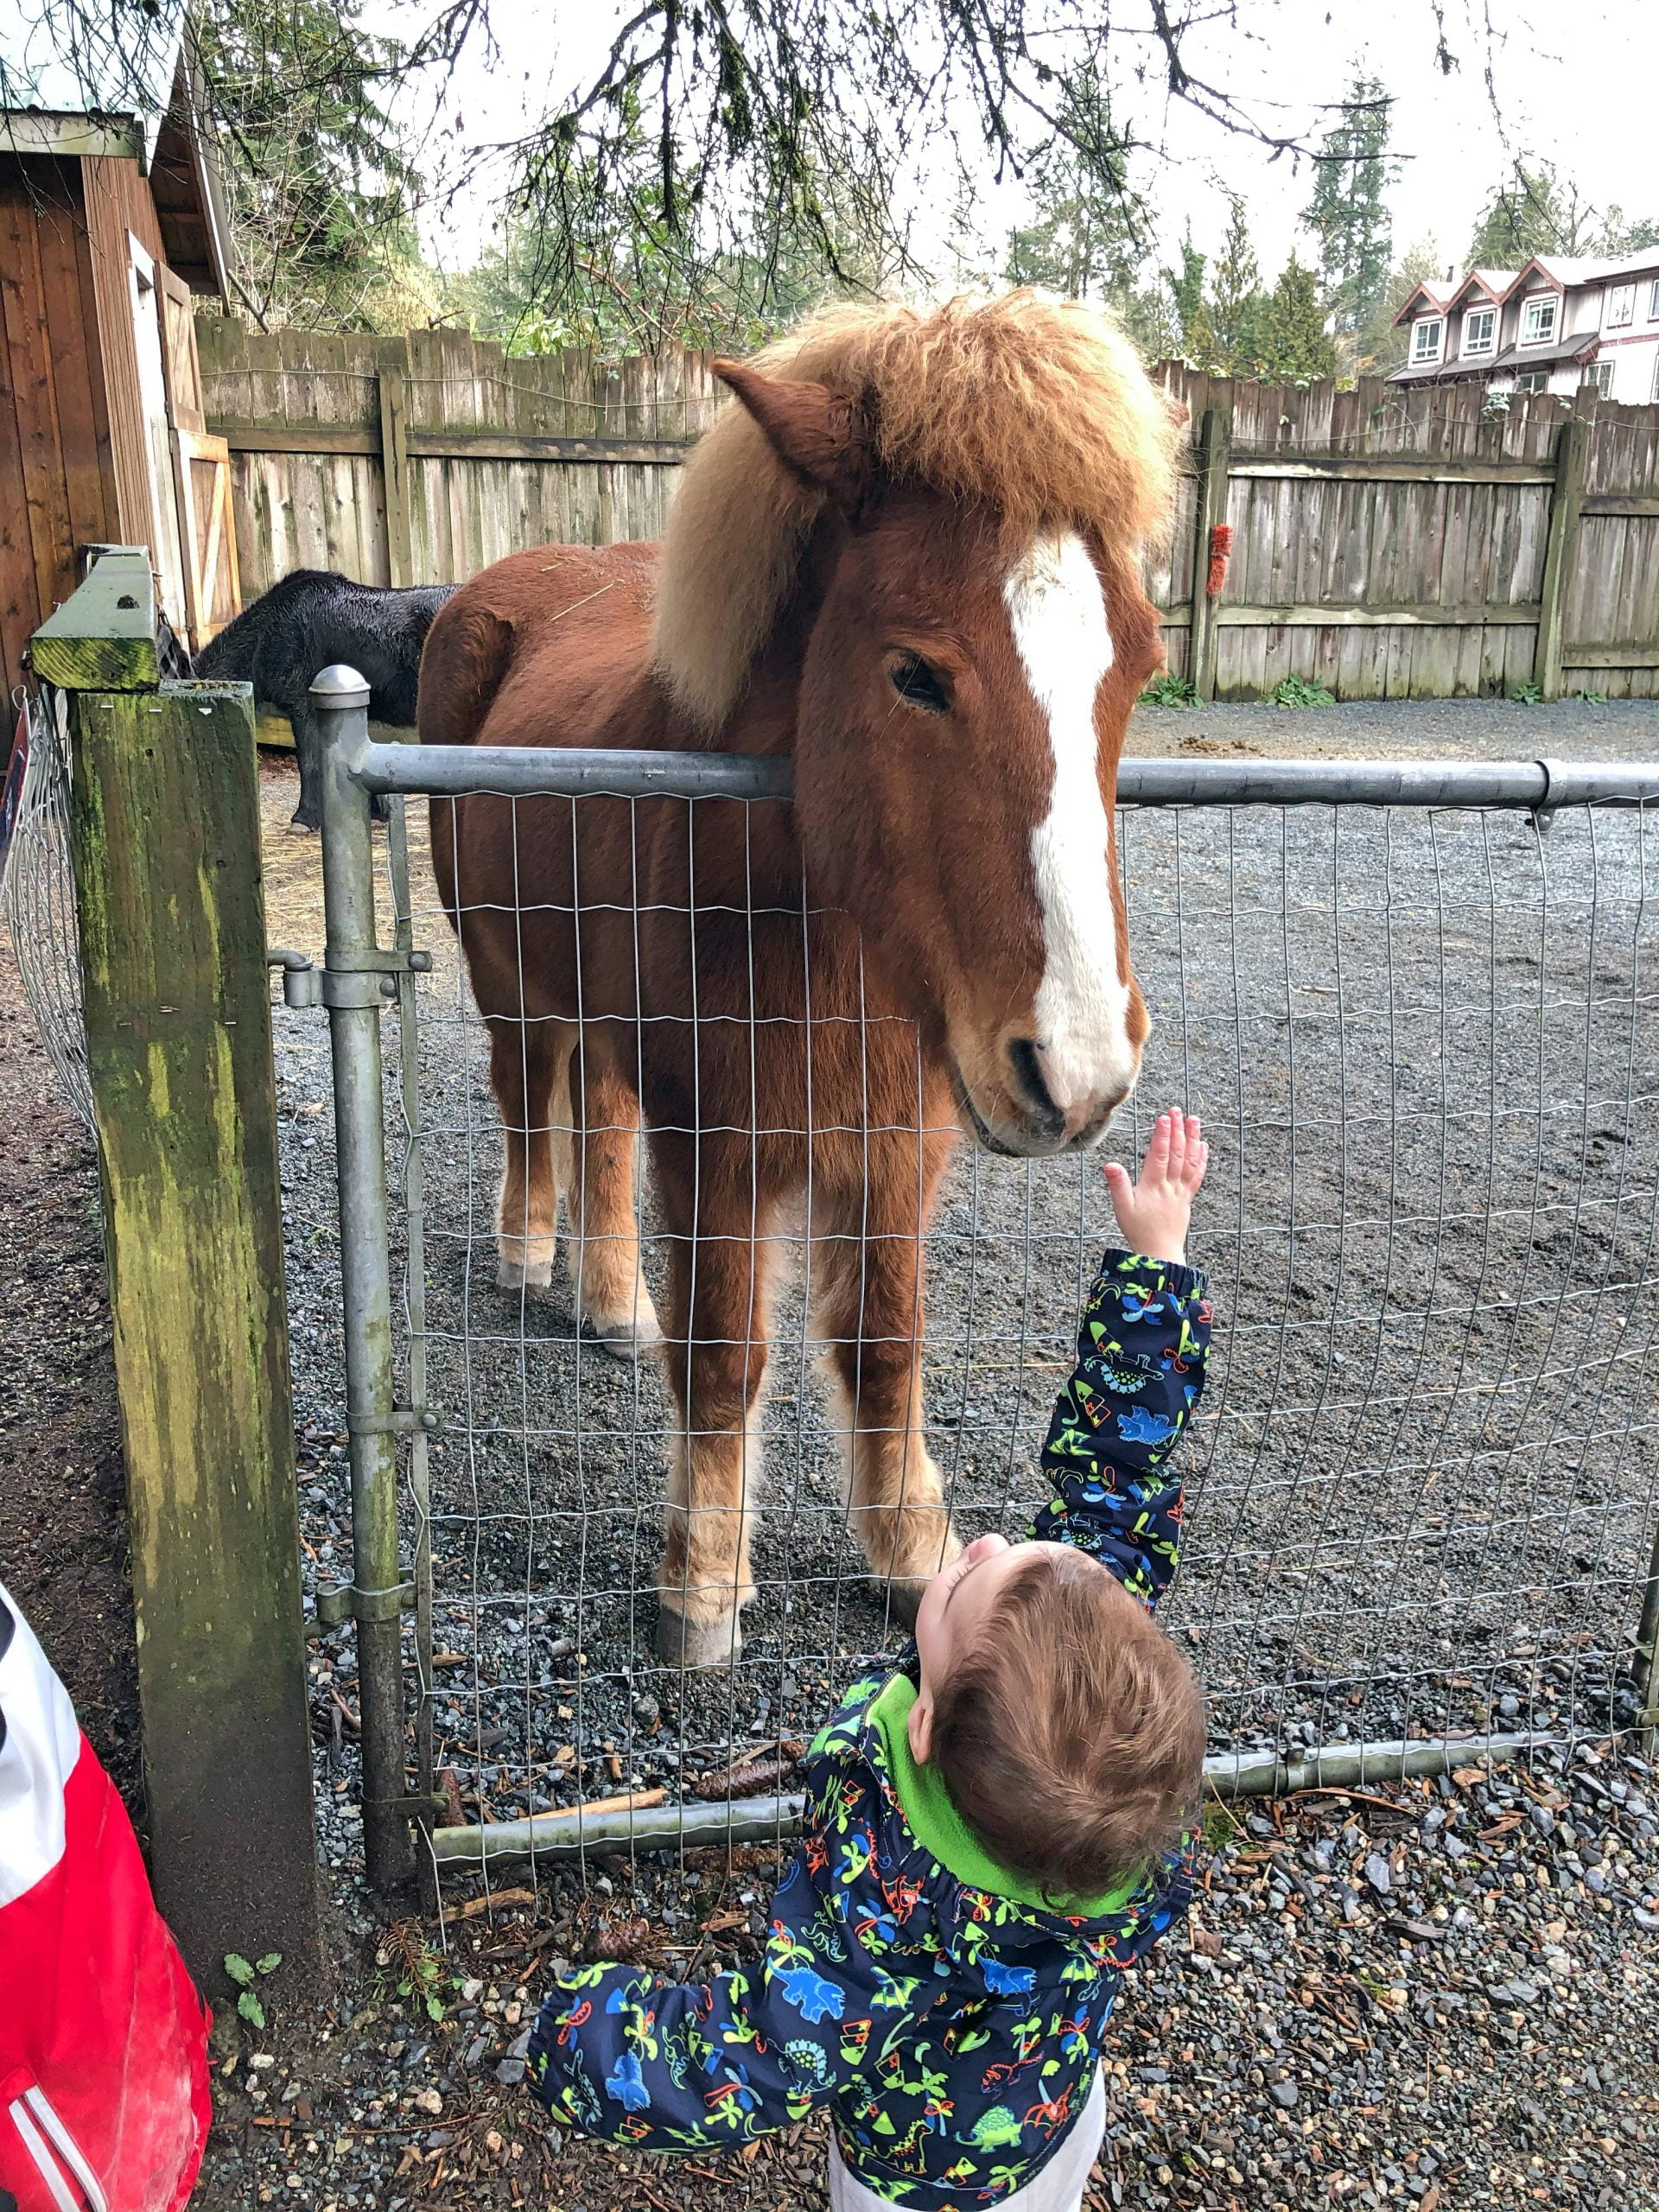 Reaching to Pet the Horse at Maplewood Farm